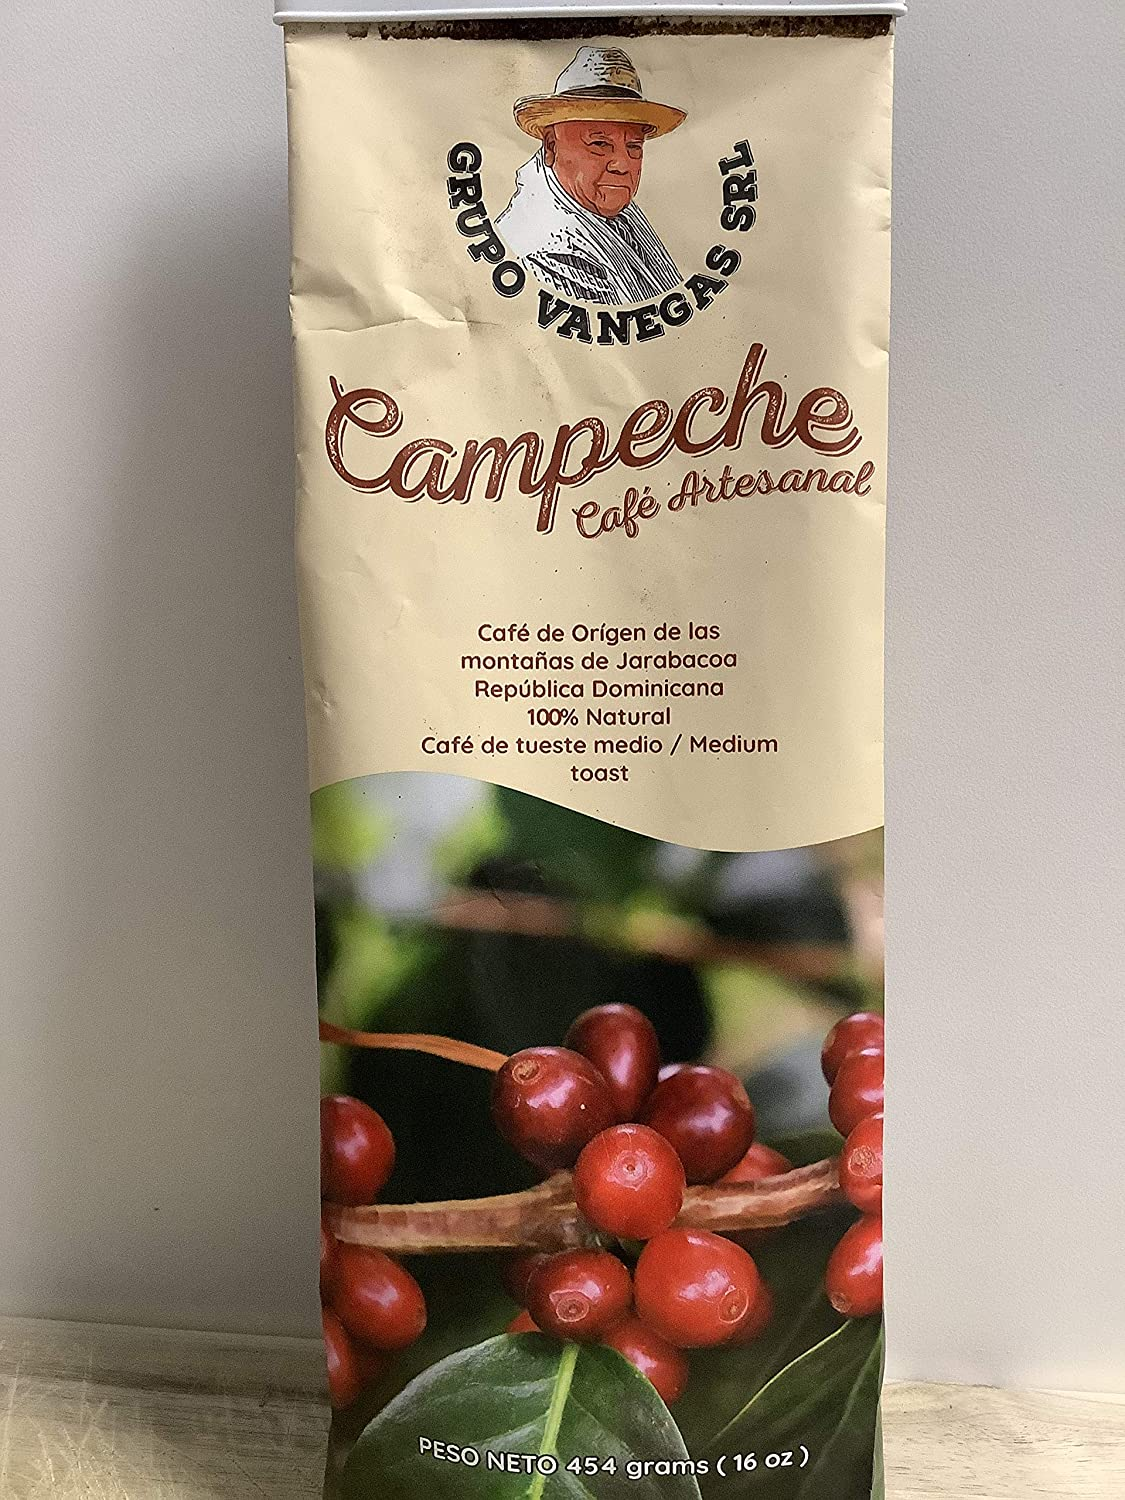 CAMPECHE Cafe Artesanal 100% Natural from Jarabacoa DOMINICAN REPUBLIC Ground Coffee